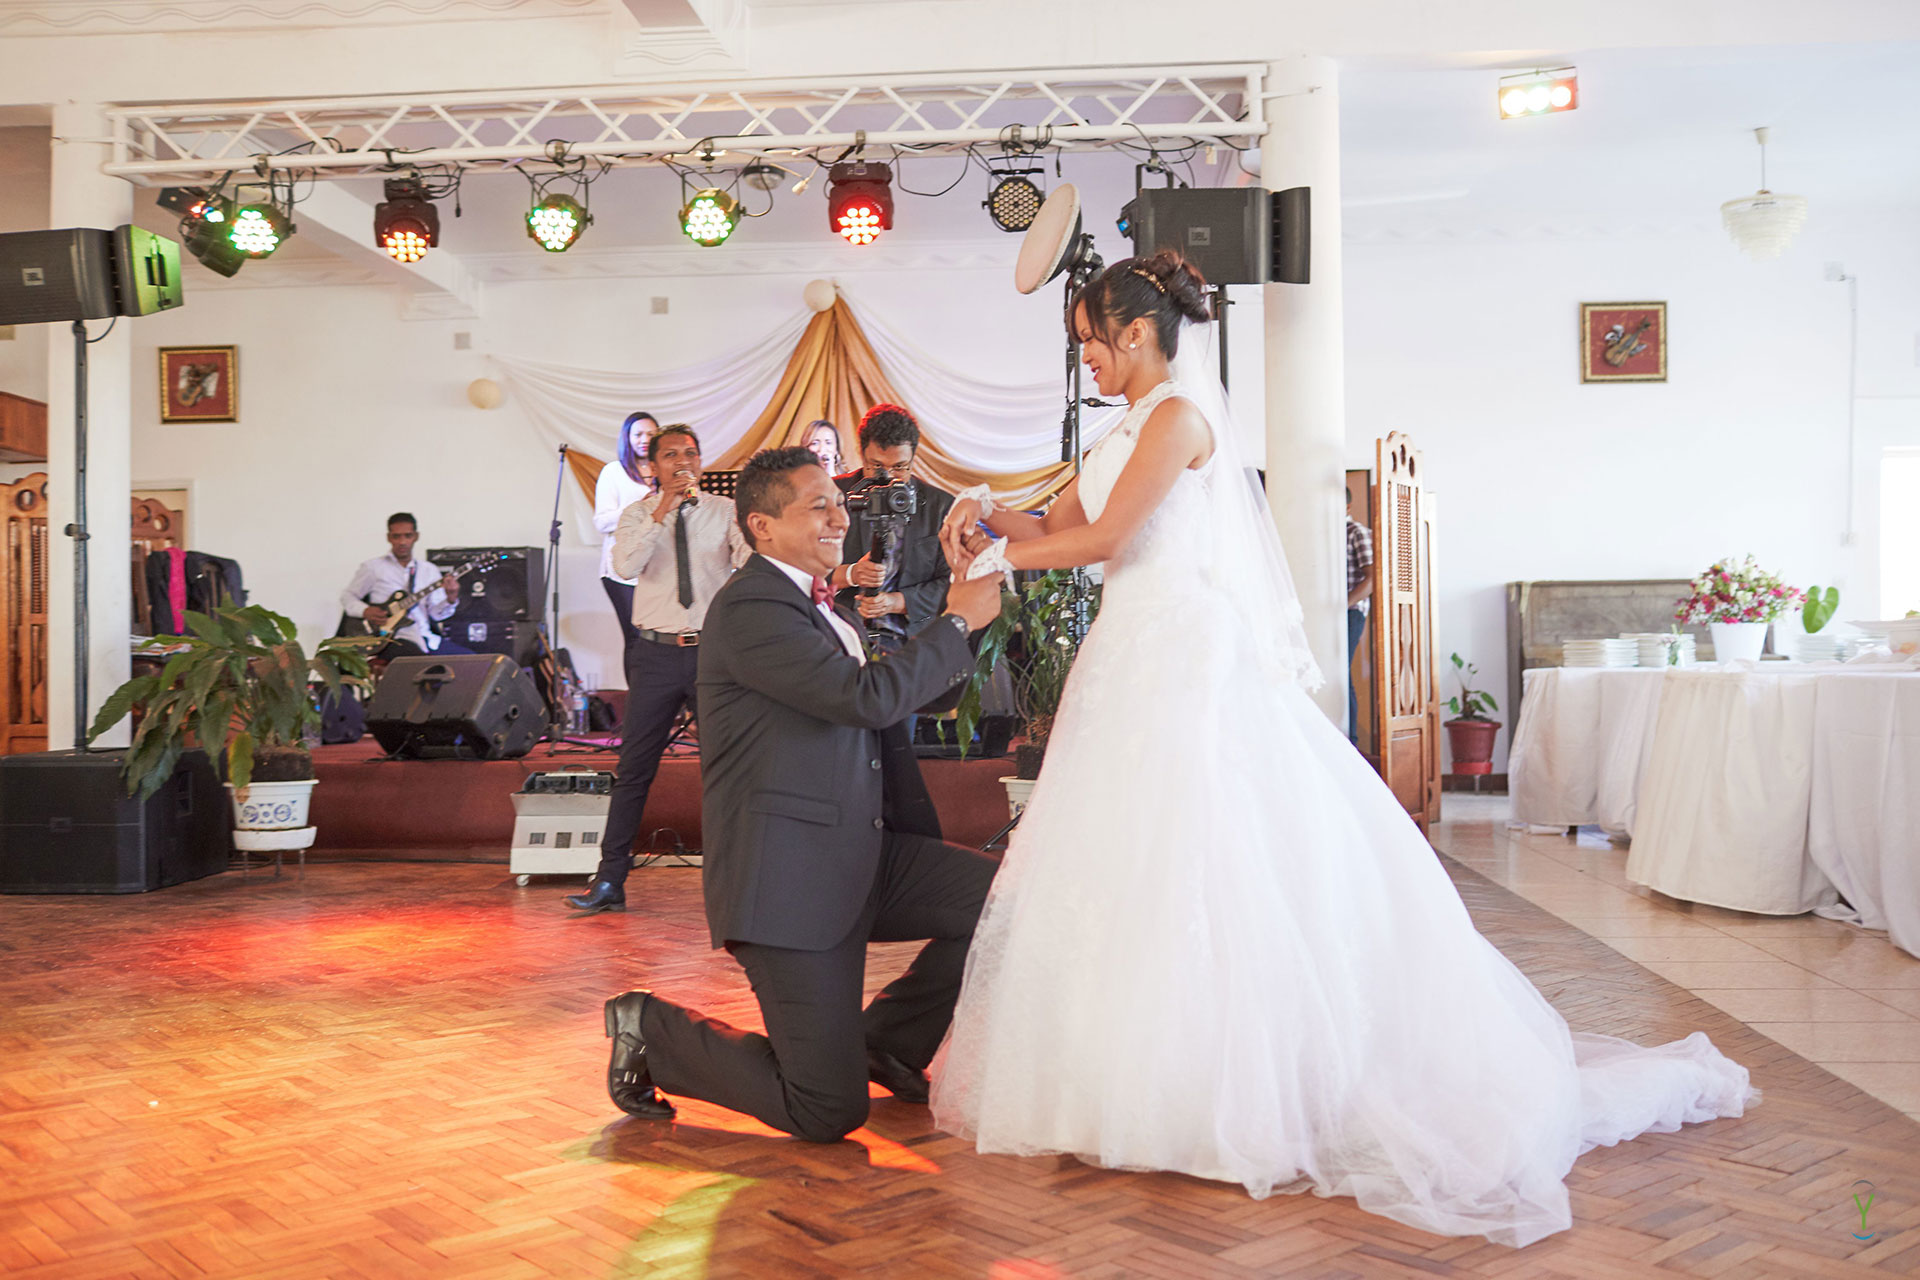 0443_Mariage_Mbola_Hoby_18-09-22